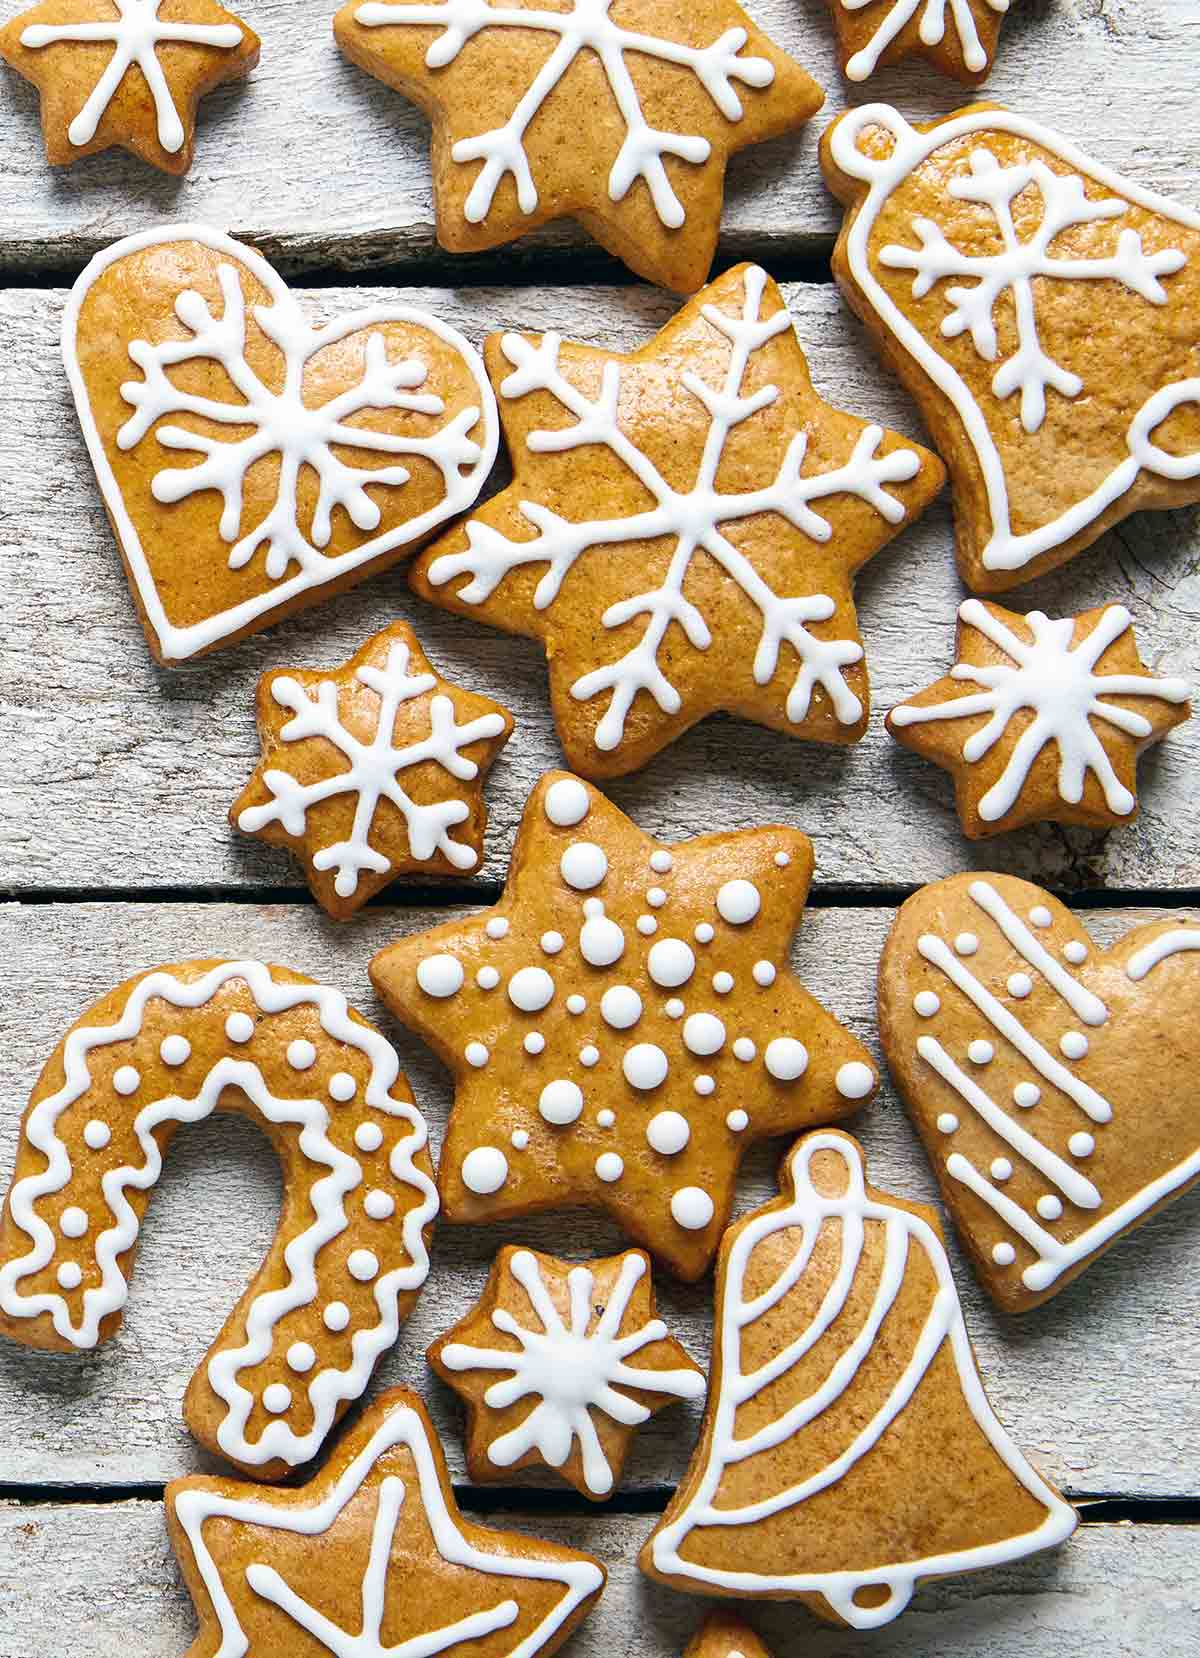 A variety of gingersnaps cookies cut into different shapes